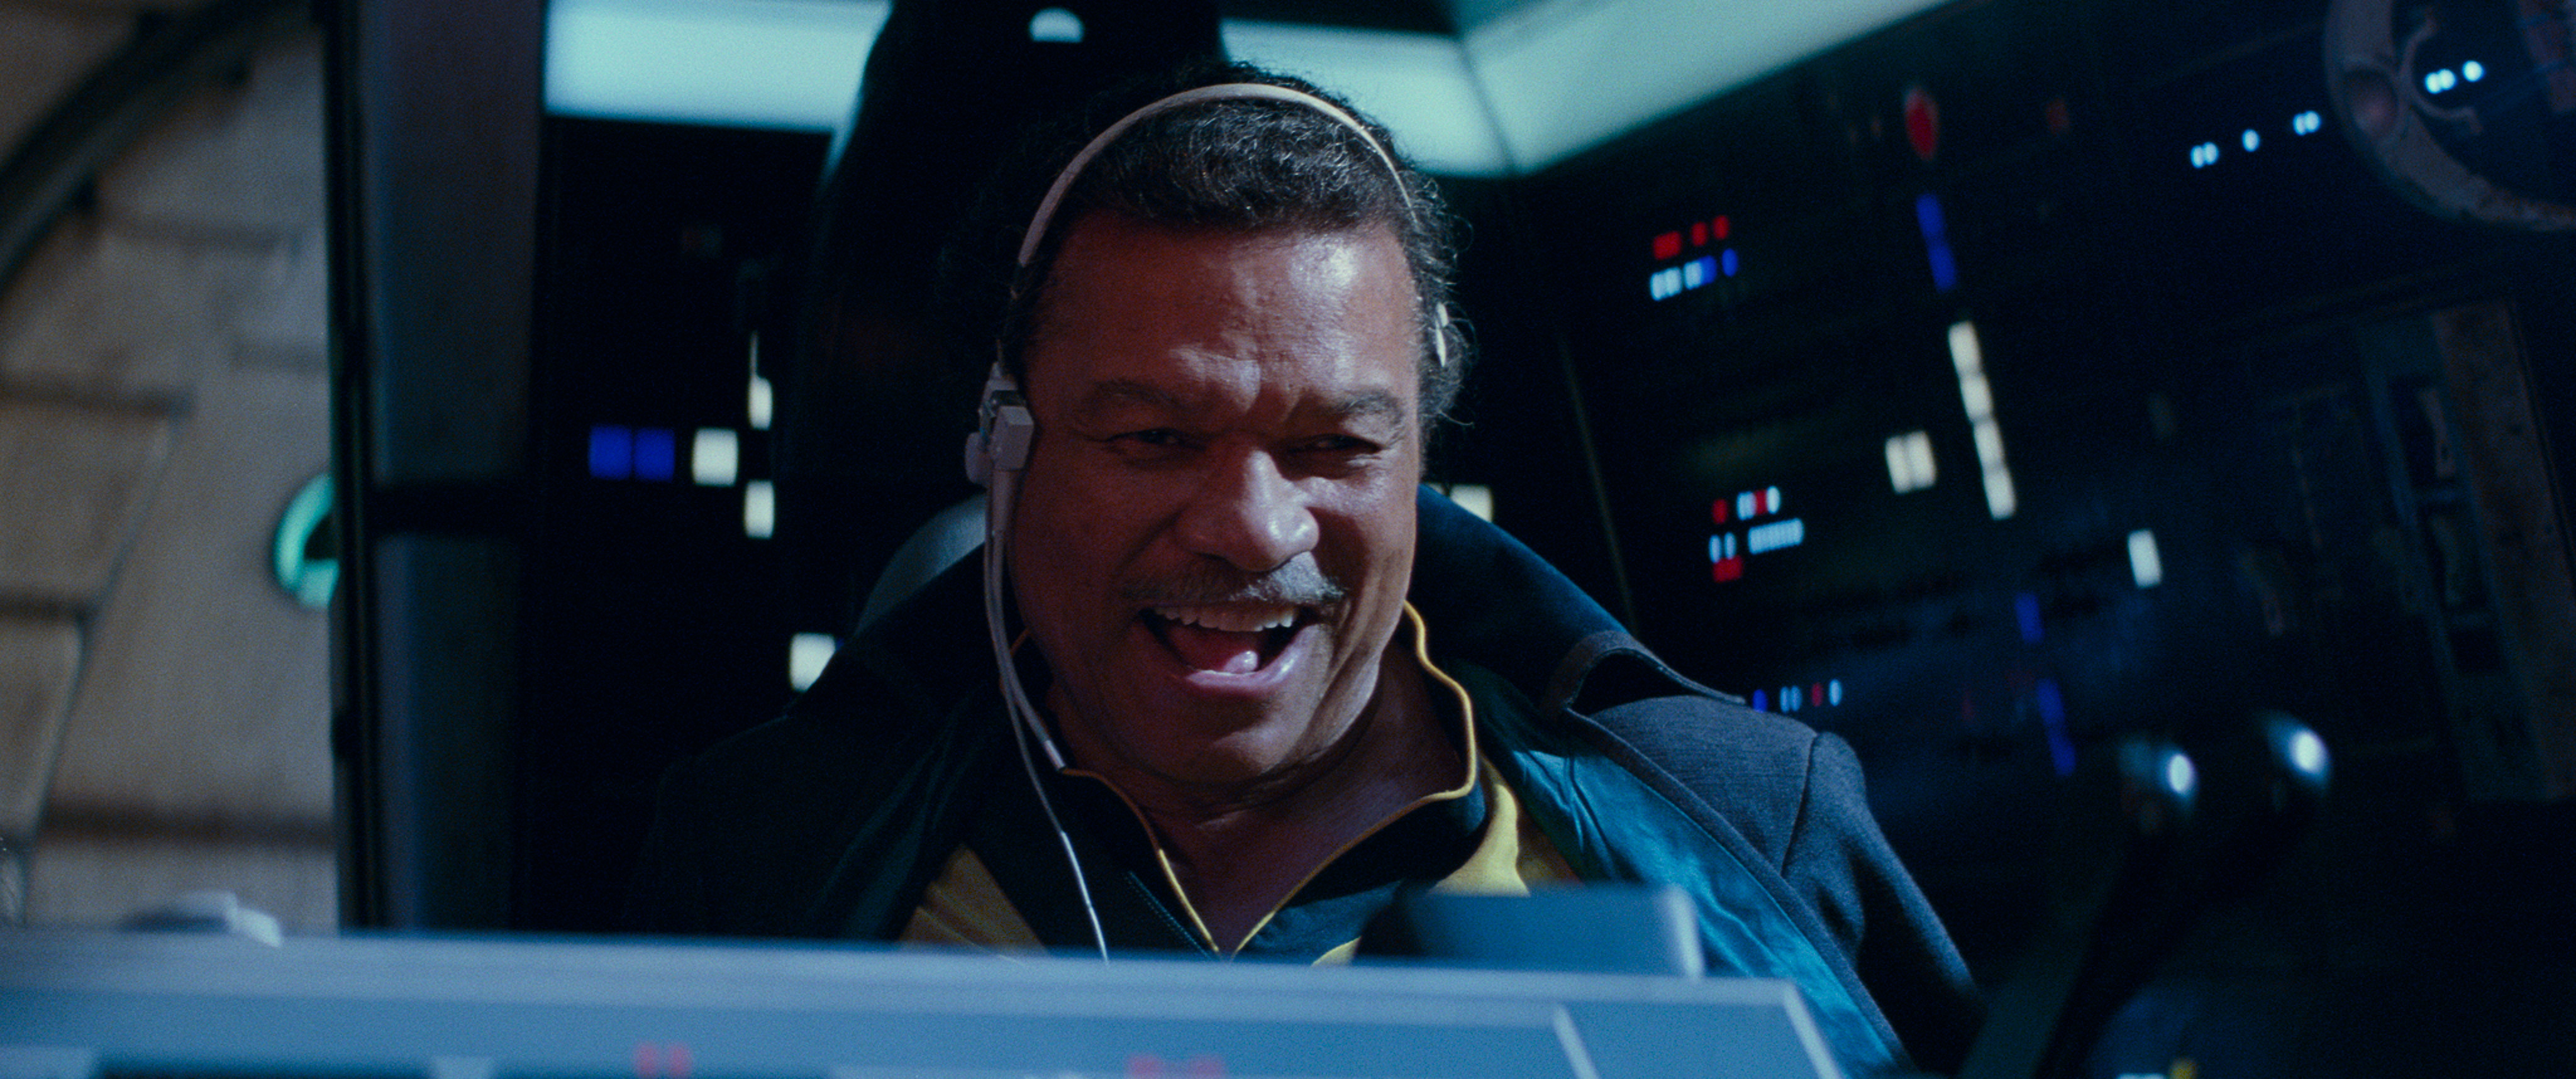 star-wars-the-rise-of-skywalker-official-high-resolution-images-2